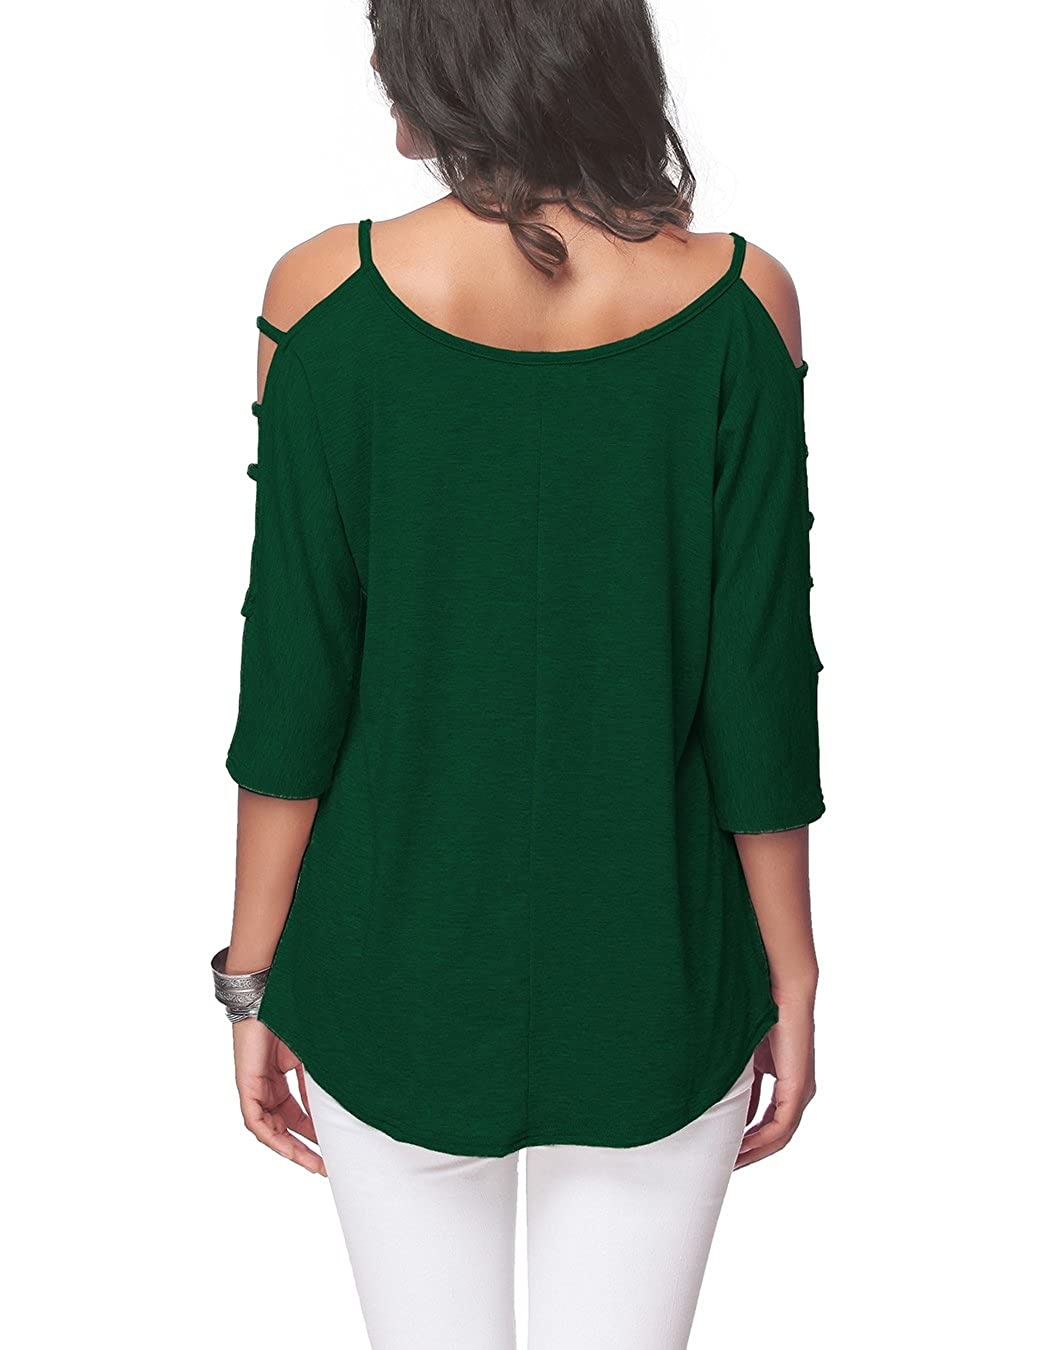 Womens Casual Loose Hollowed Out Shoulder Three Quarter Sleeve Shirts